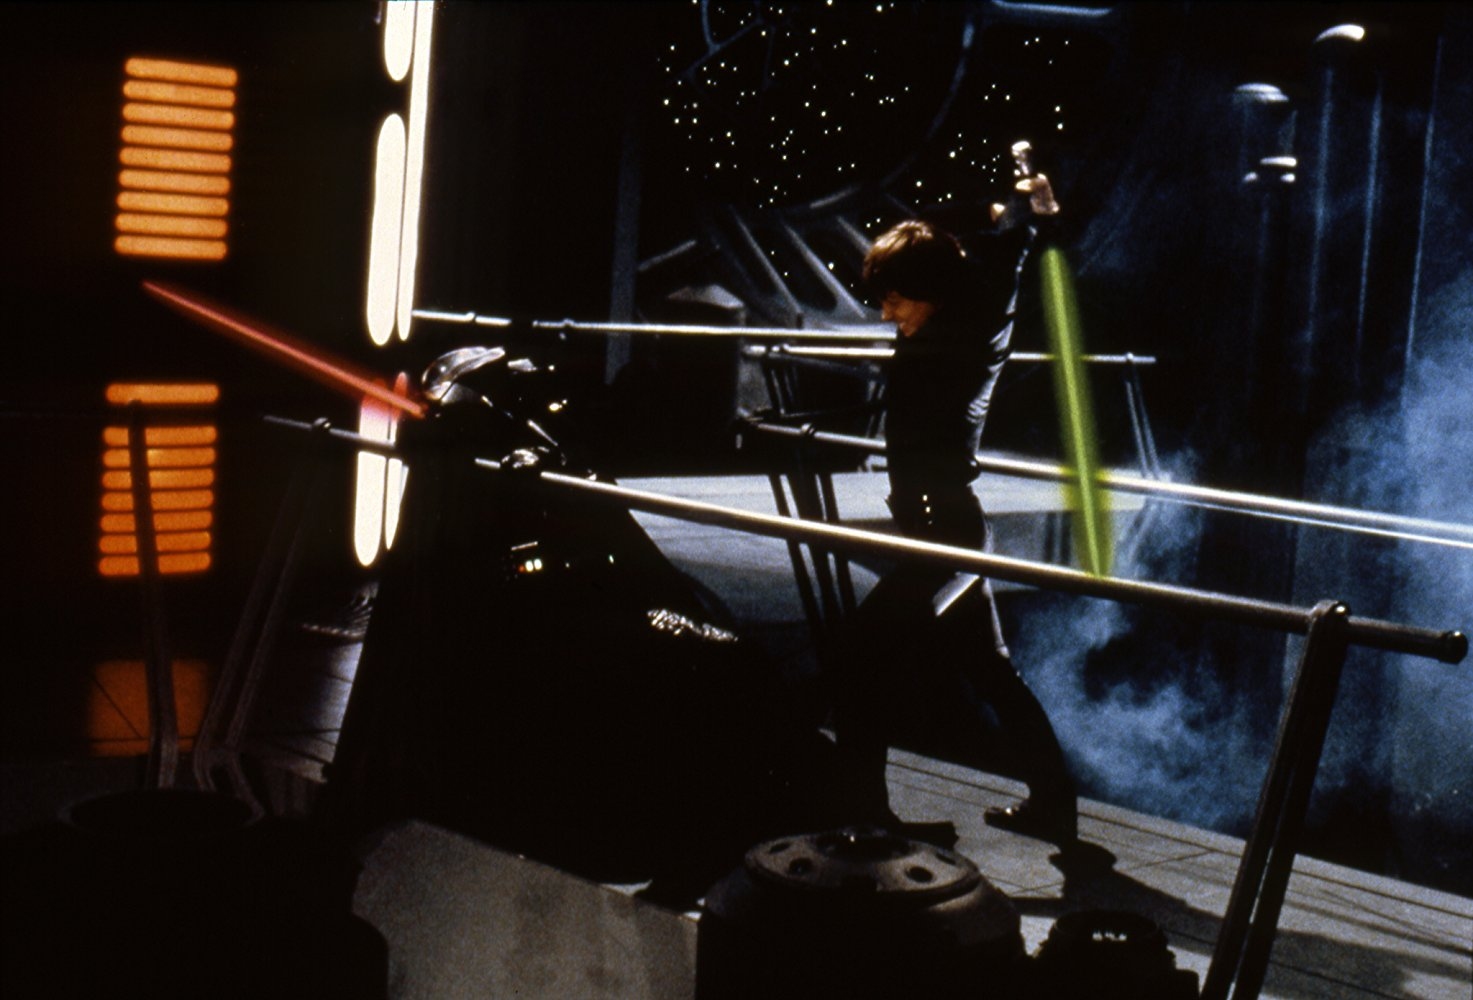 Le Meilleur Photo De David Prowse Star Wars Episode Vi Le Retour Ce Mois Ci